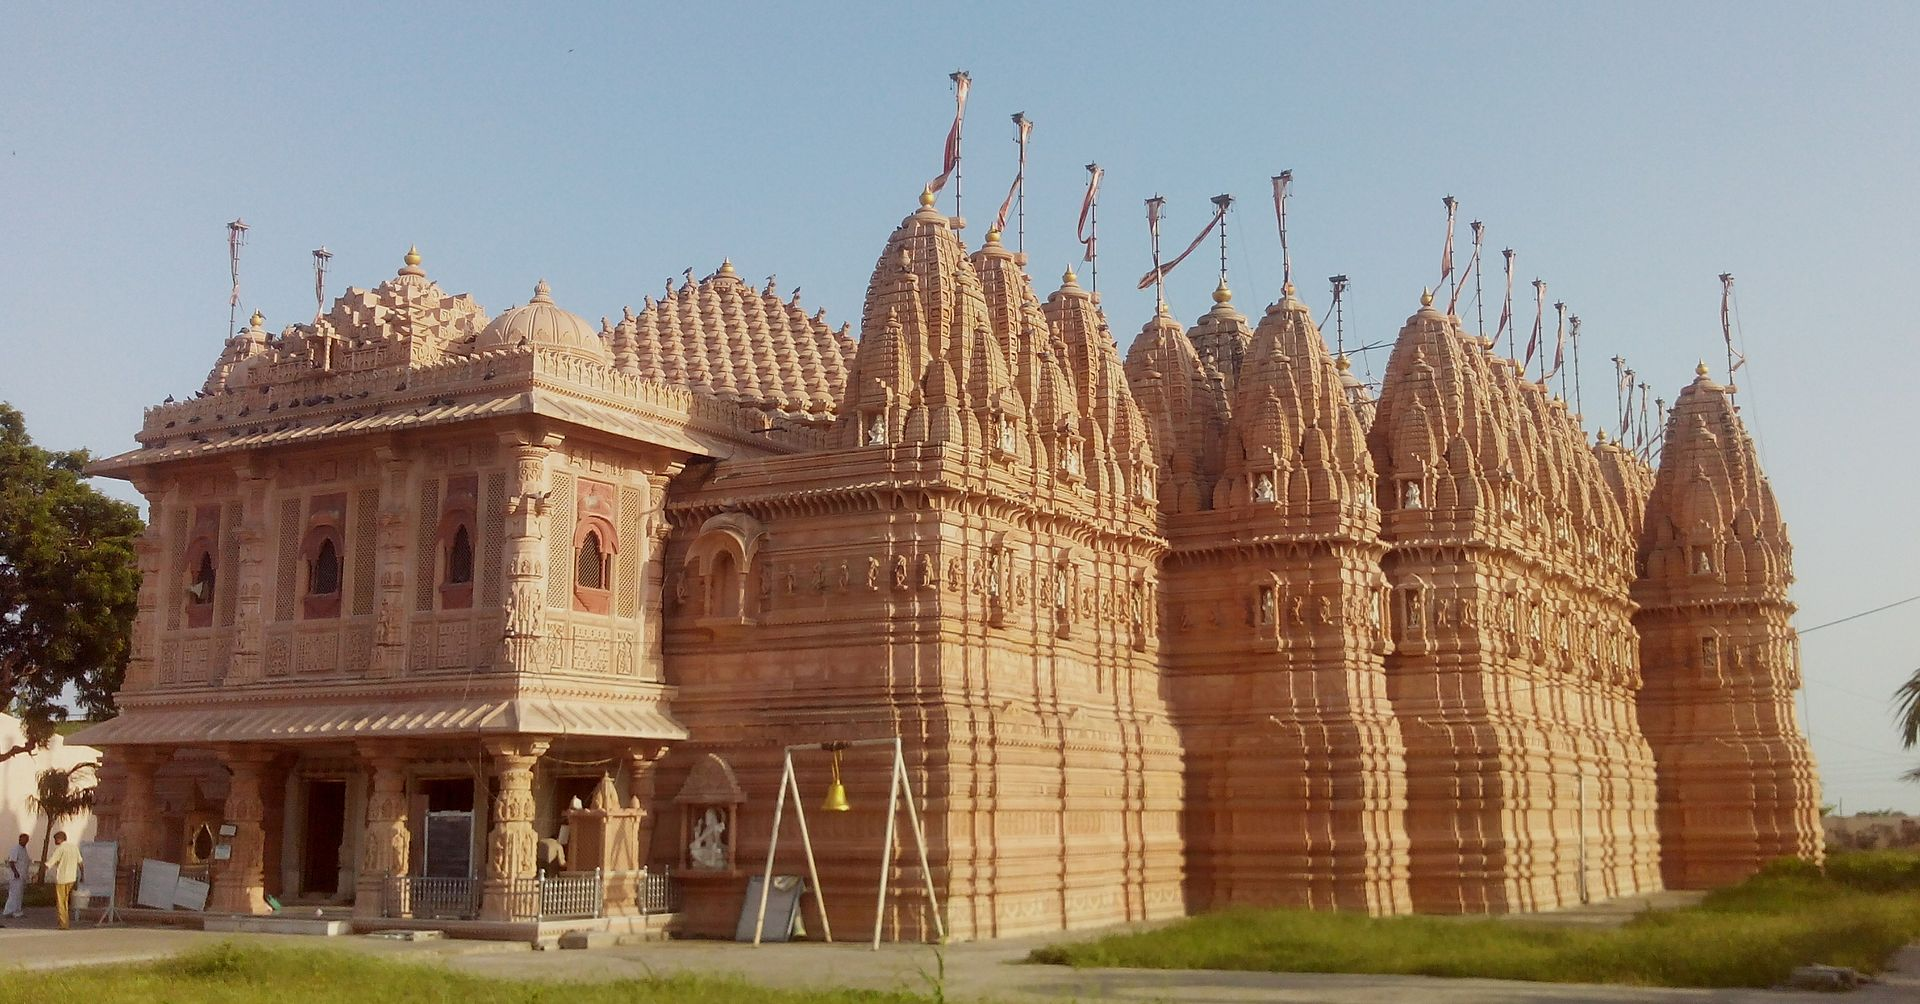 Bhadreshwar Jain Temple Wikipedia